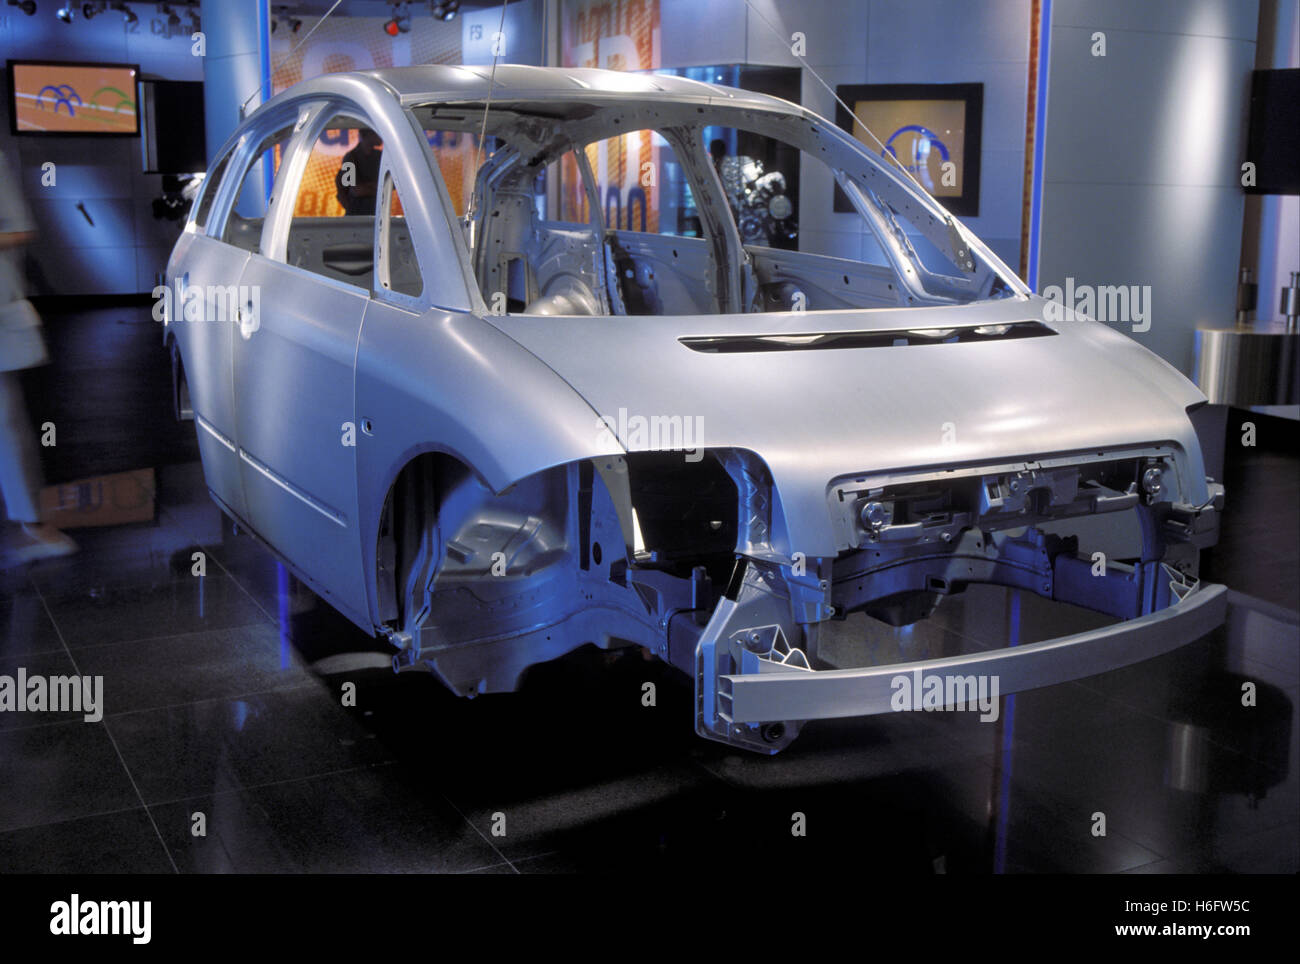 Germany, Wolfsburg, the Volkswagen Autostadt, aluminium coachwork of the Audi A2. - Stock Image